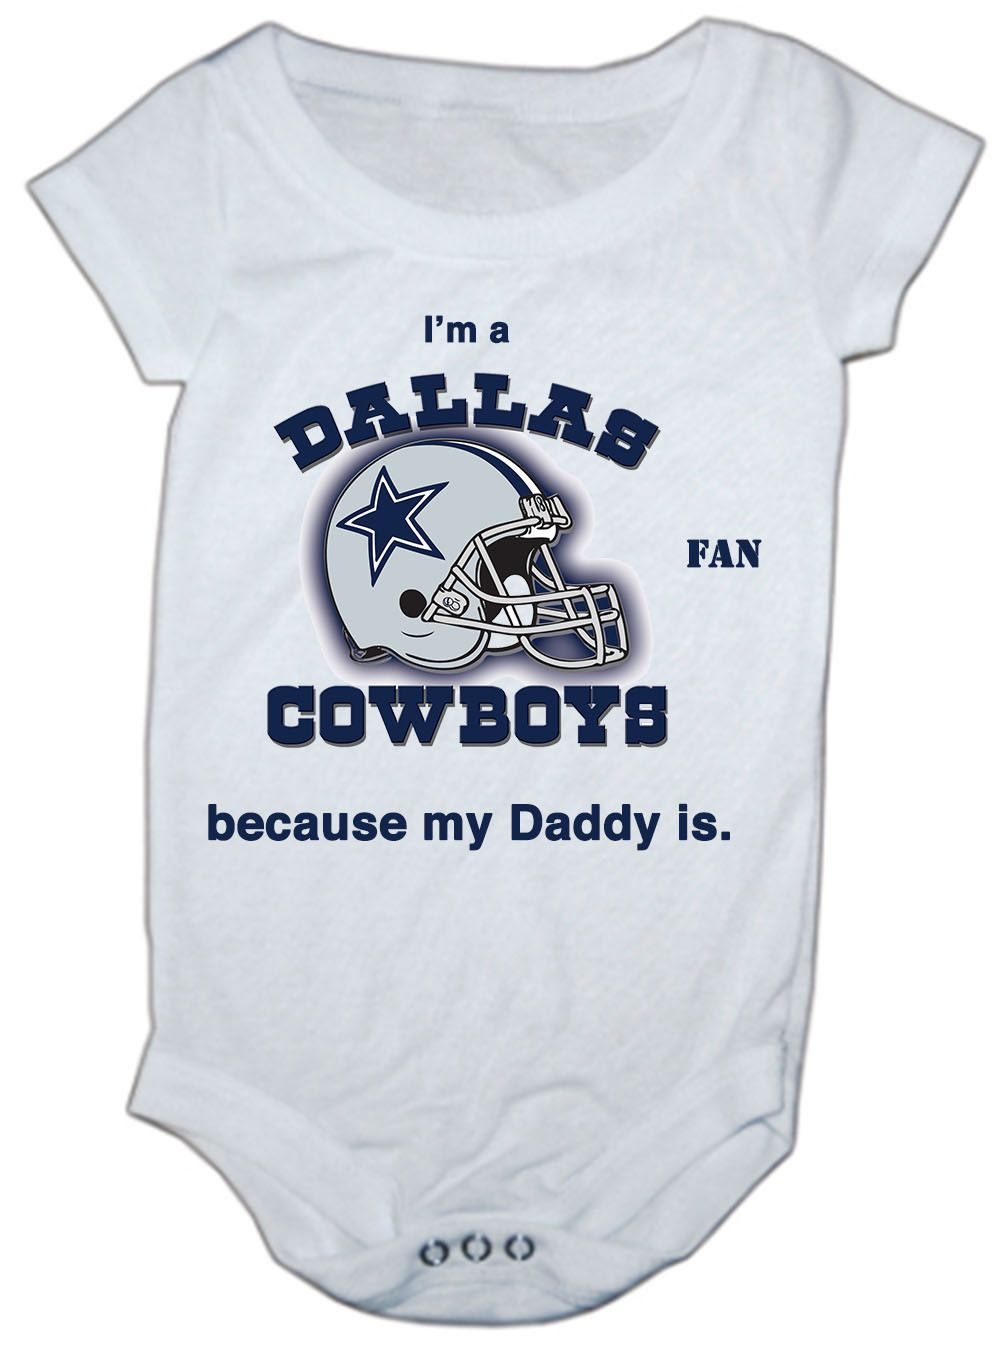 Dallas Cowboys Baby Clothes Magnificent Dallas #cowboys #baby Cowboys #cowboys Creeper #creeper #dallas Review